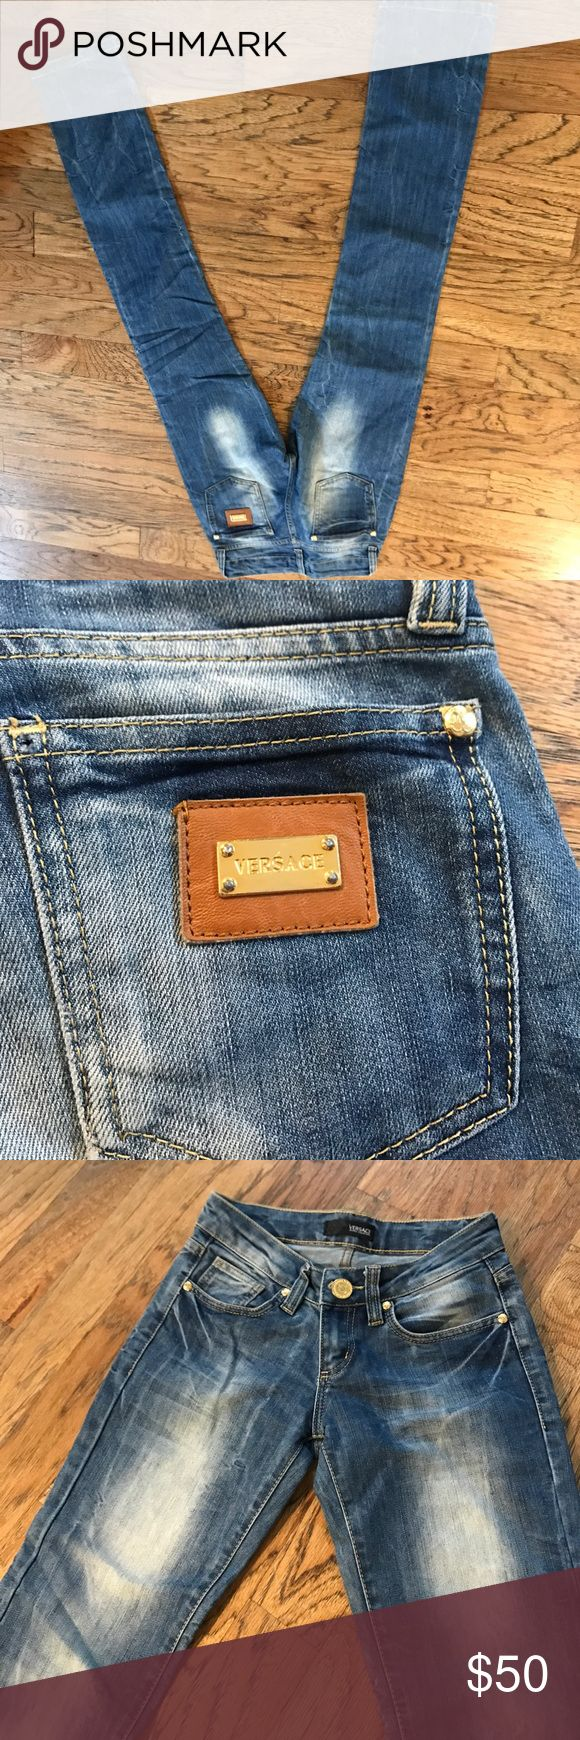 Versace jeans straight leg mid to low waisted Great condition Versace jeans medium wash no holes or tears. Size 26 European (I would say 0 in us). Versace Jeans Straight Leg